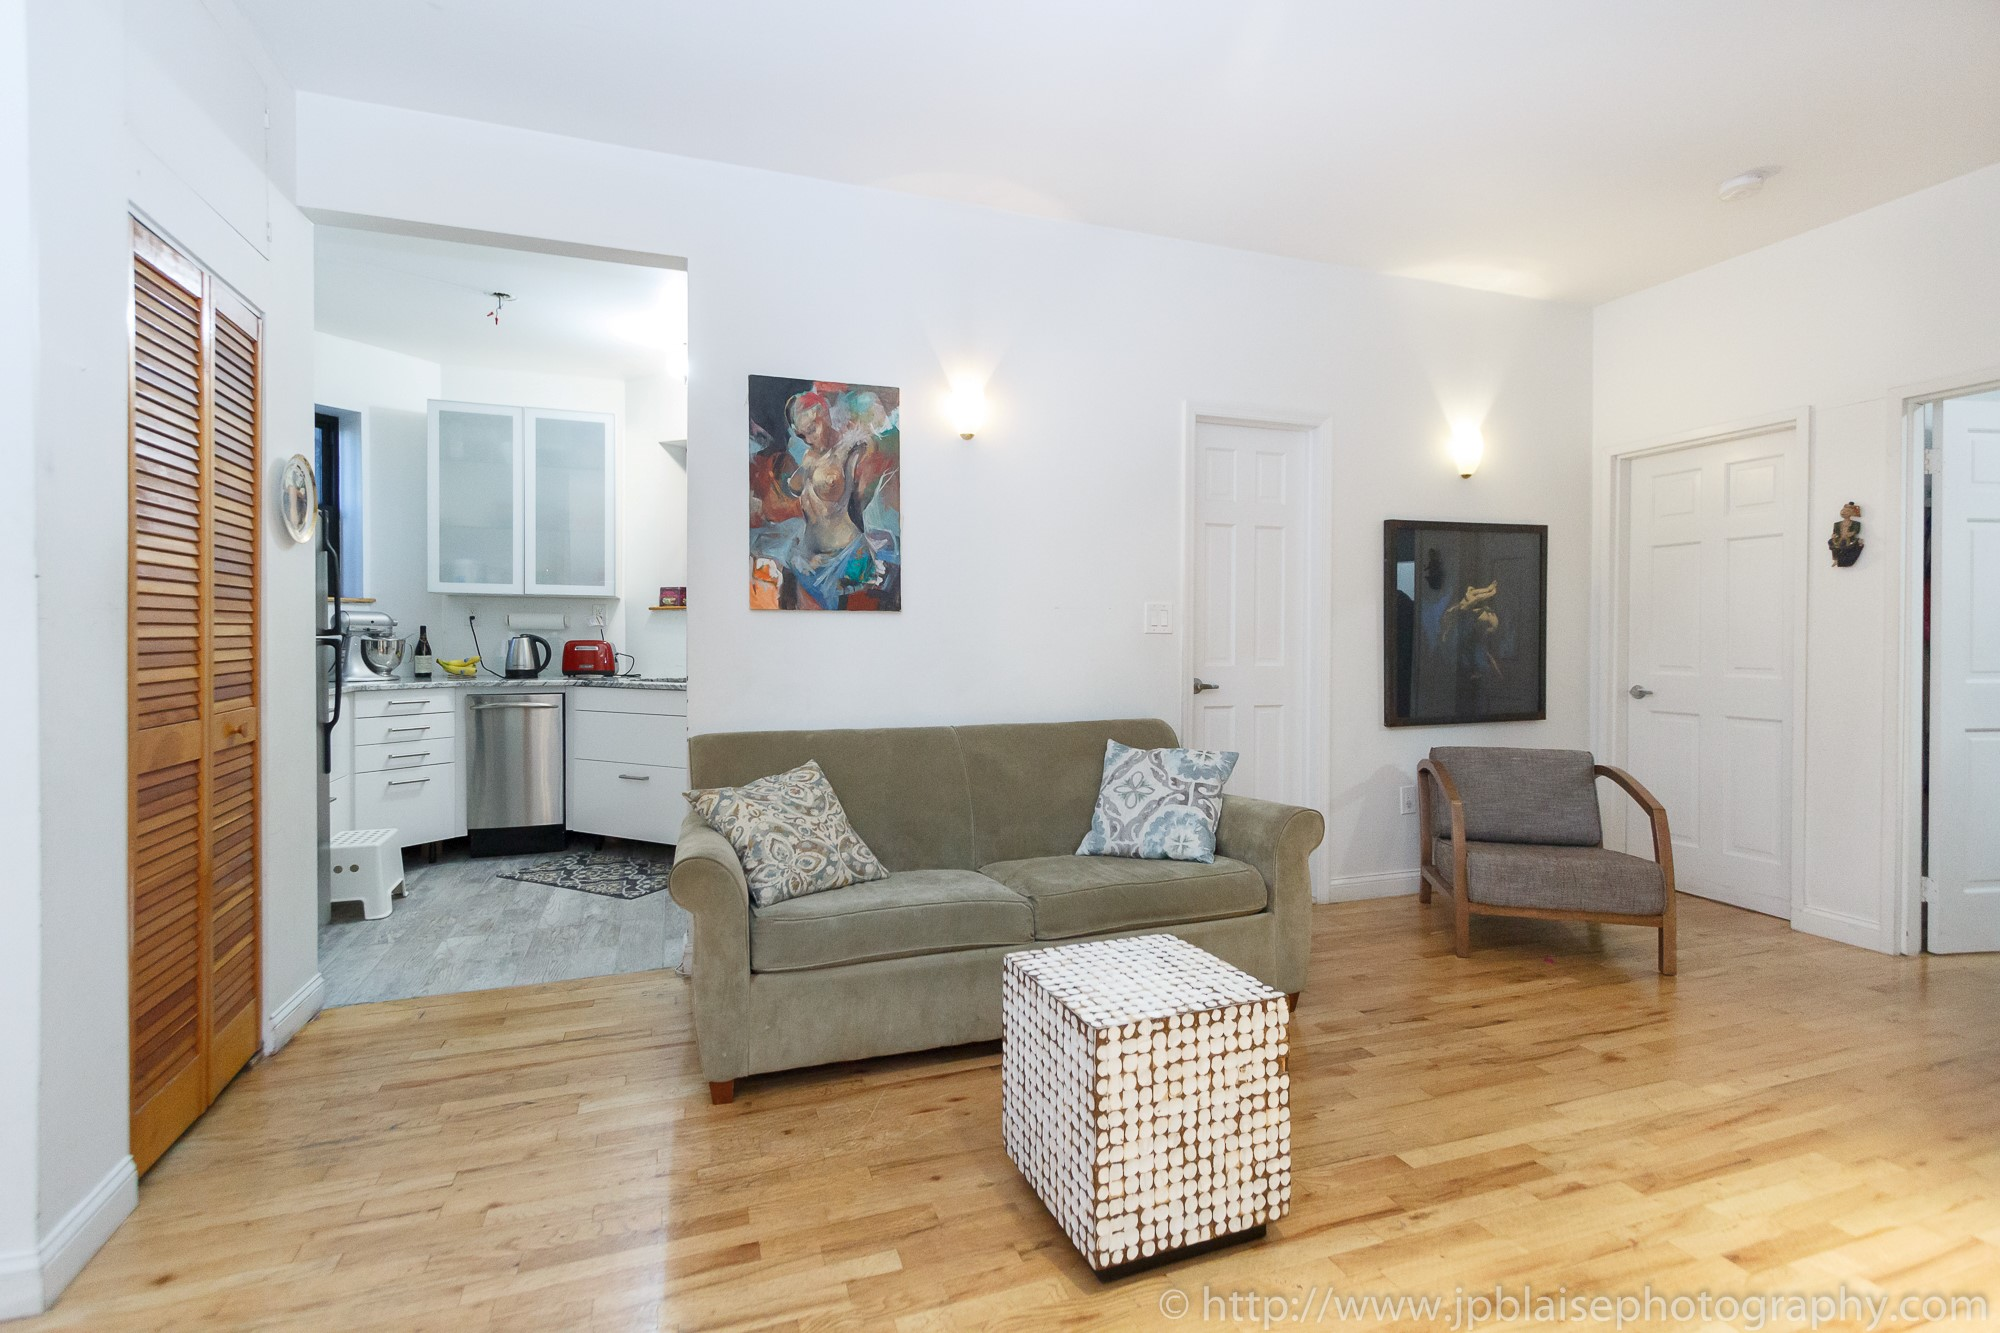 New York City apartment adventures: Two bedroom unit on ...